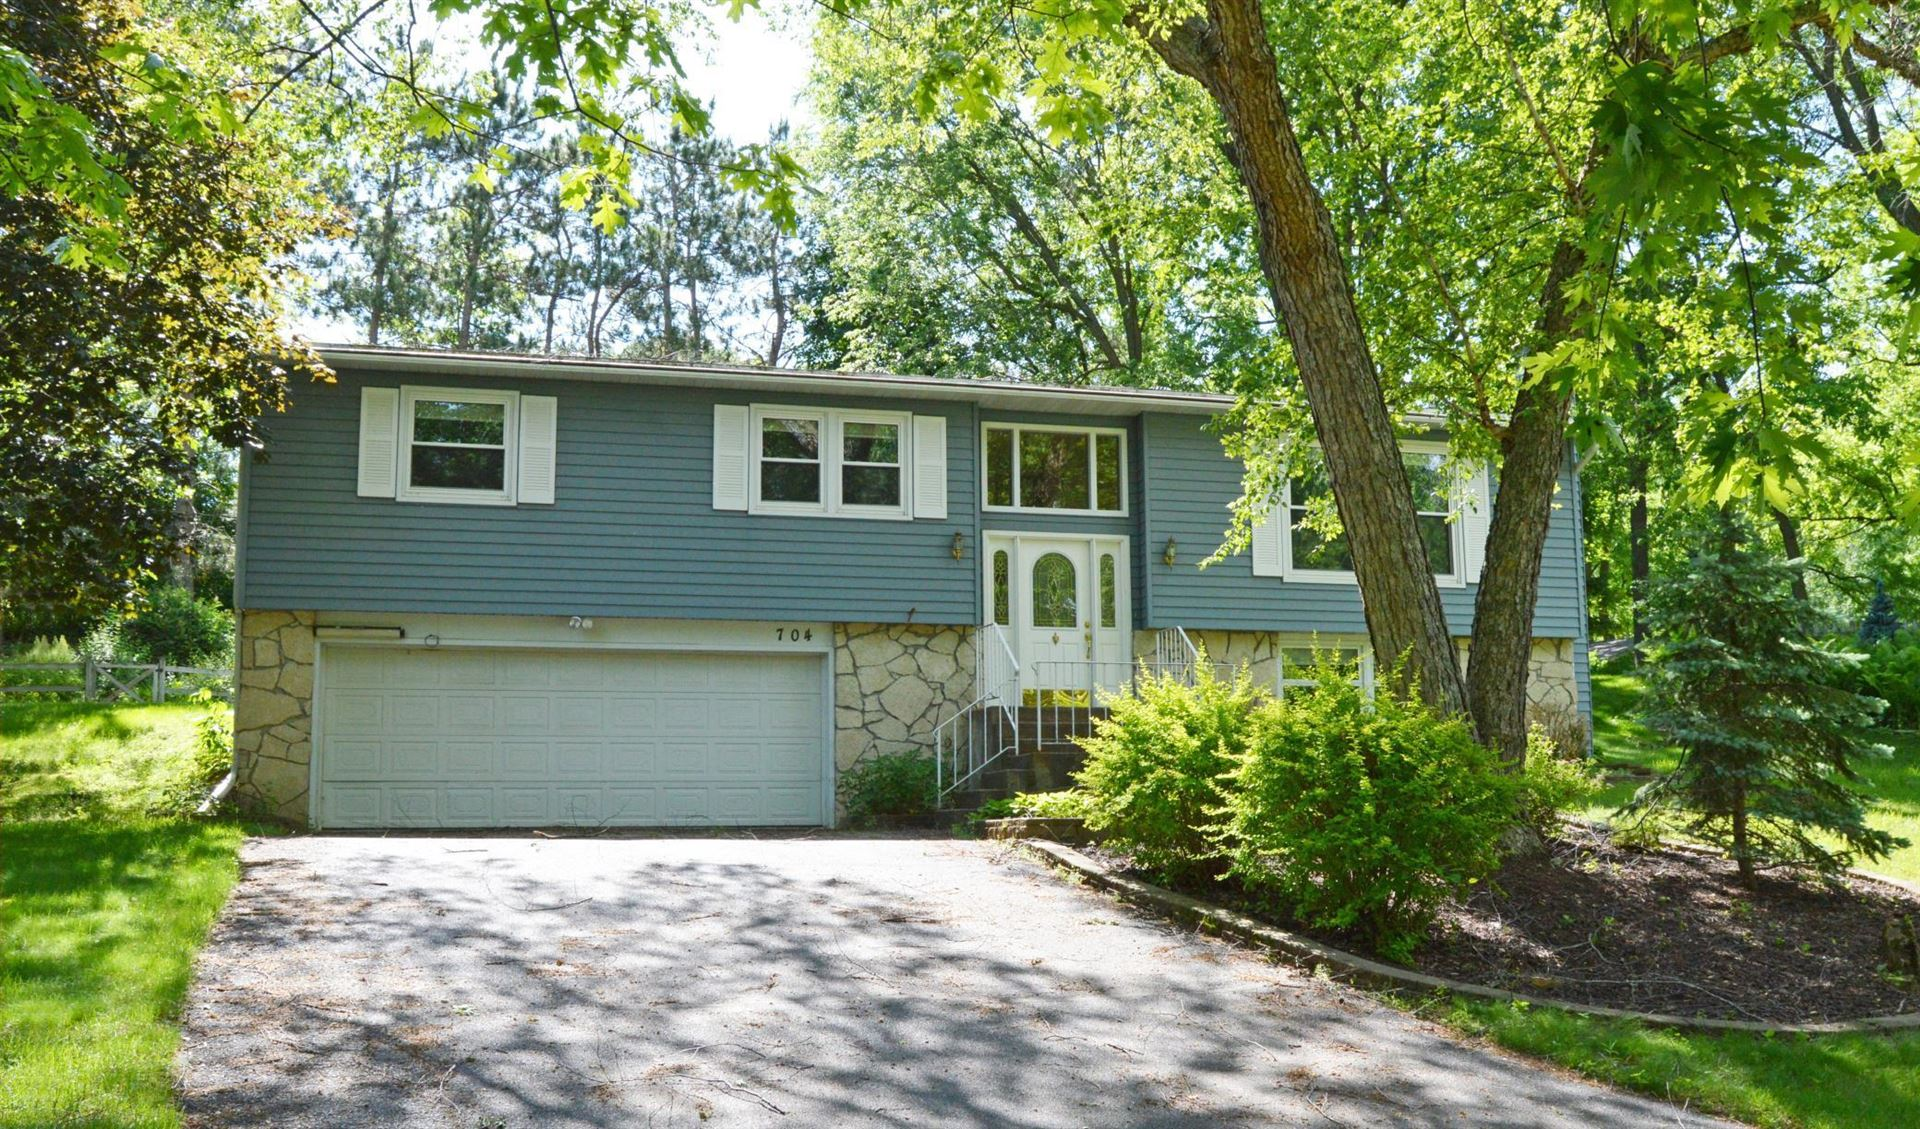 704 Kerry Drive, Winona, MN 55987 - MLS#: 5619641